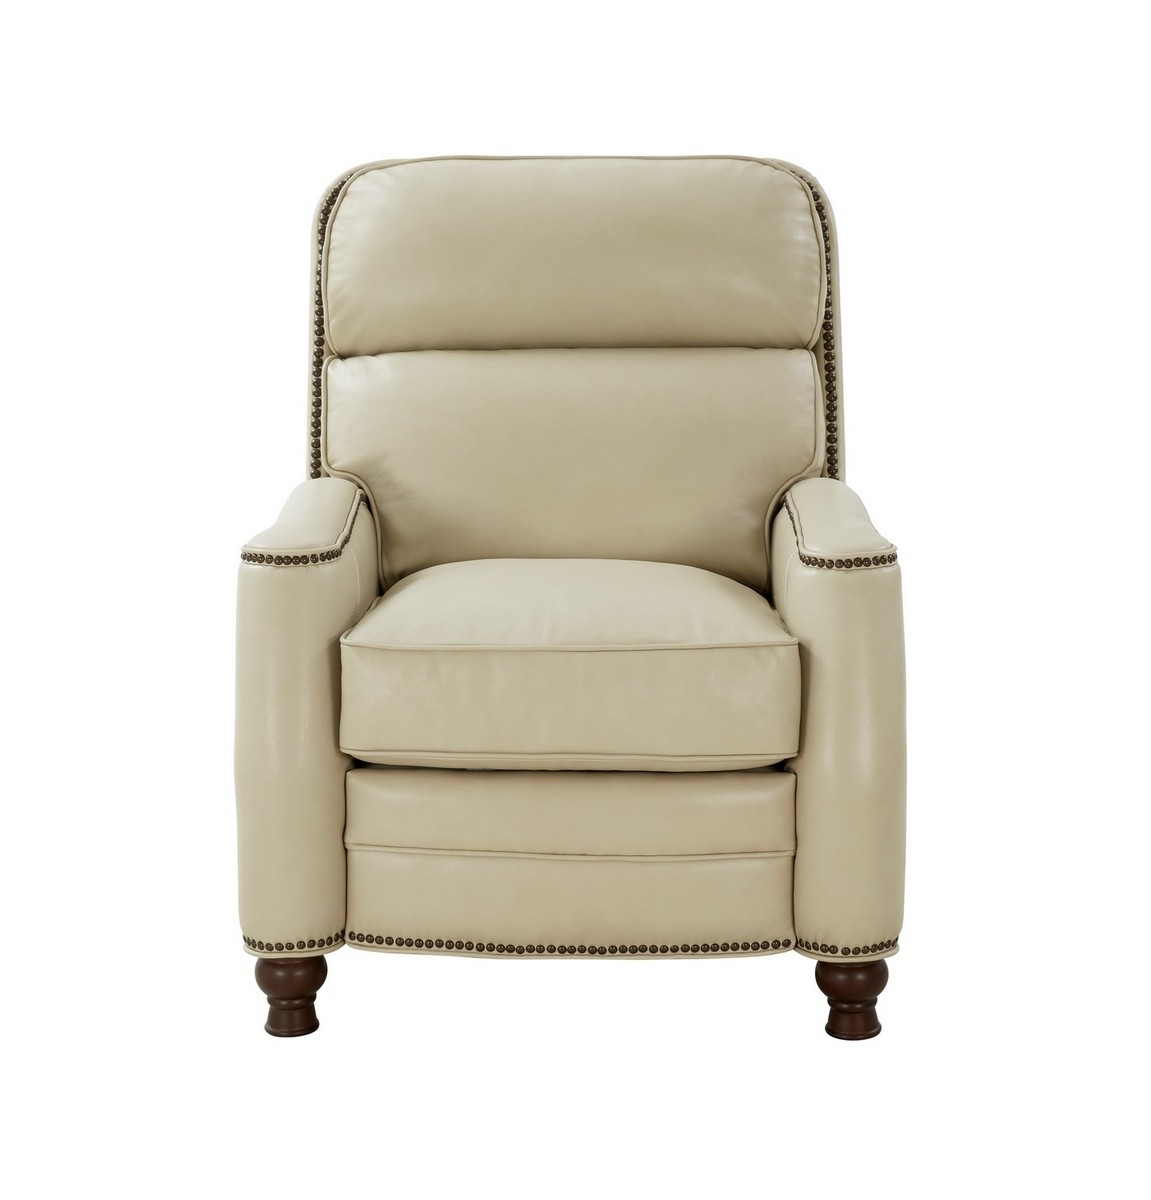 Barcalounger Townsend Recliner Chair - Barone Parchment/All Leather